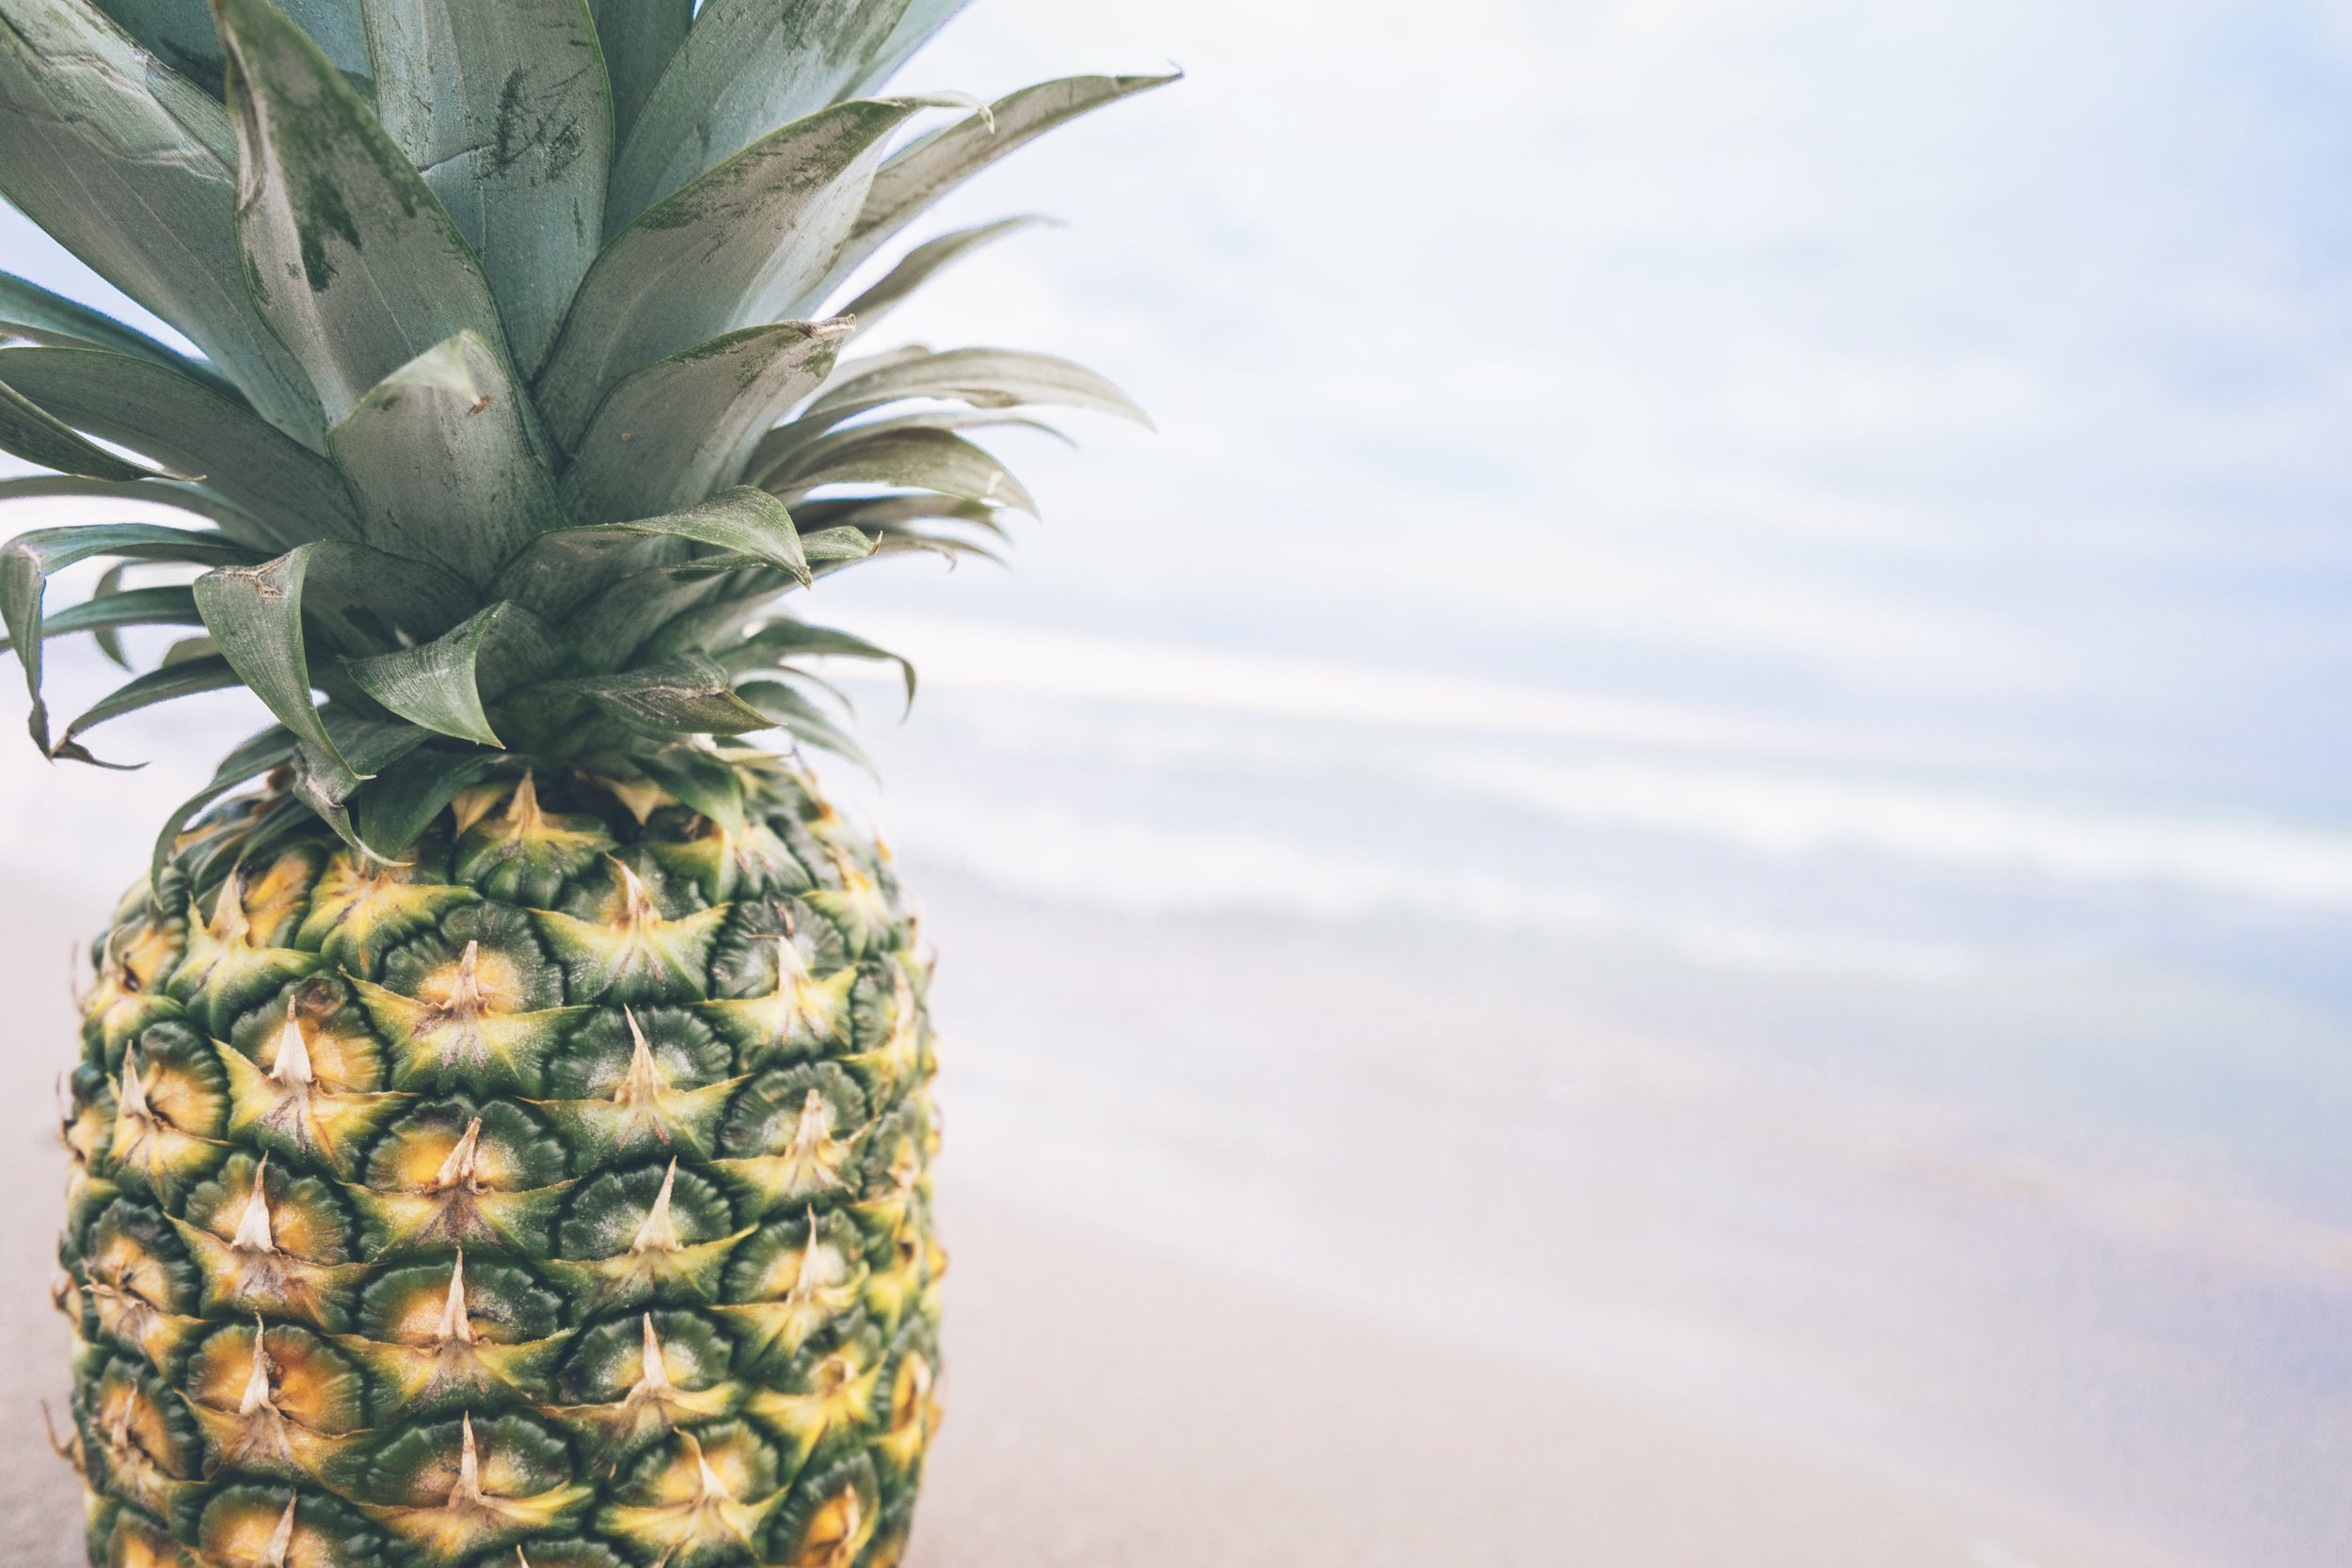 Why Pineapples? - Pineapples have been used in the hospitality industry since the 18th century as a sign of welcome, warmth, and friendliness!Incorporating Pineapples into my business was a no-brainer; and they make me smile.